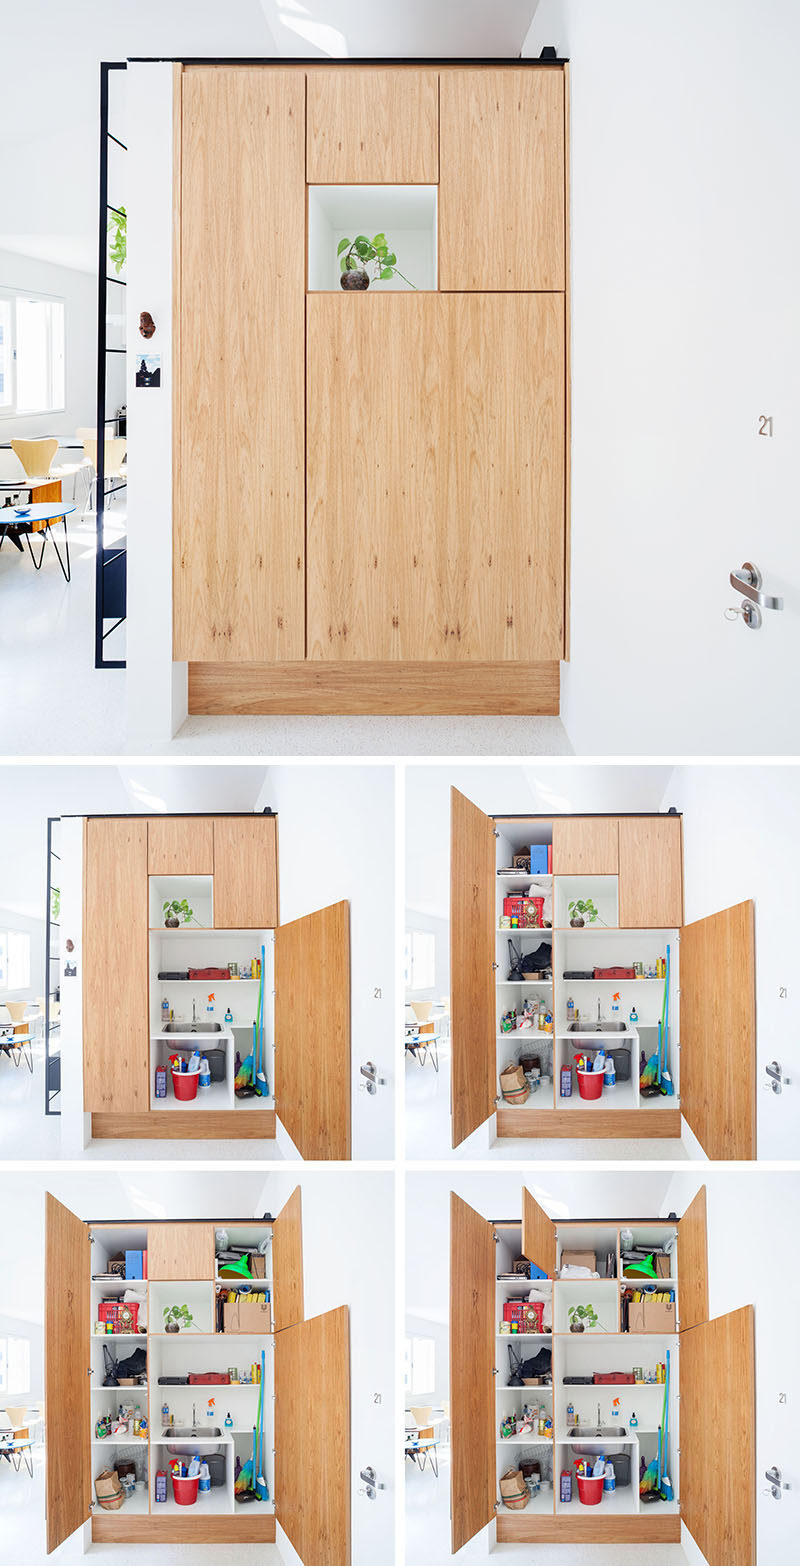 Stepping inside this apartment, you are greeted by a small white alcove with a plant that's surrounded by wood panels. Inside the panels are a variety of shelves and a small sink. #Shelving #Storage #Cabinet